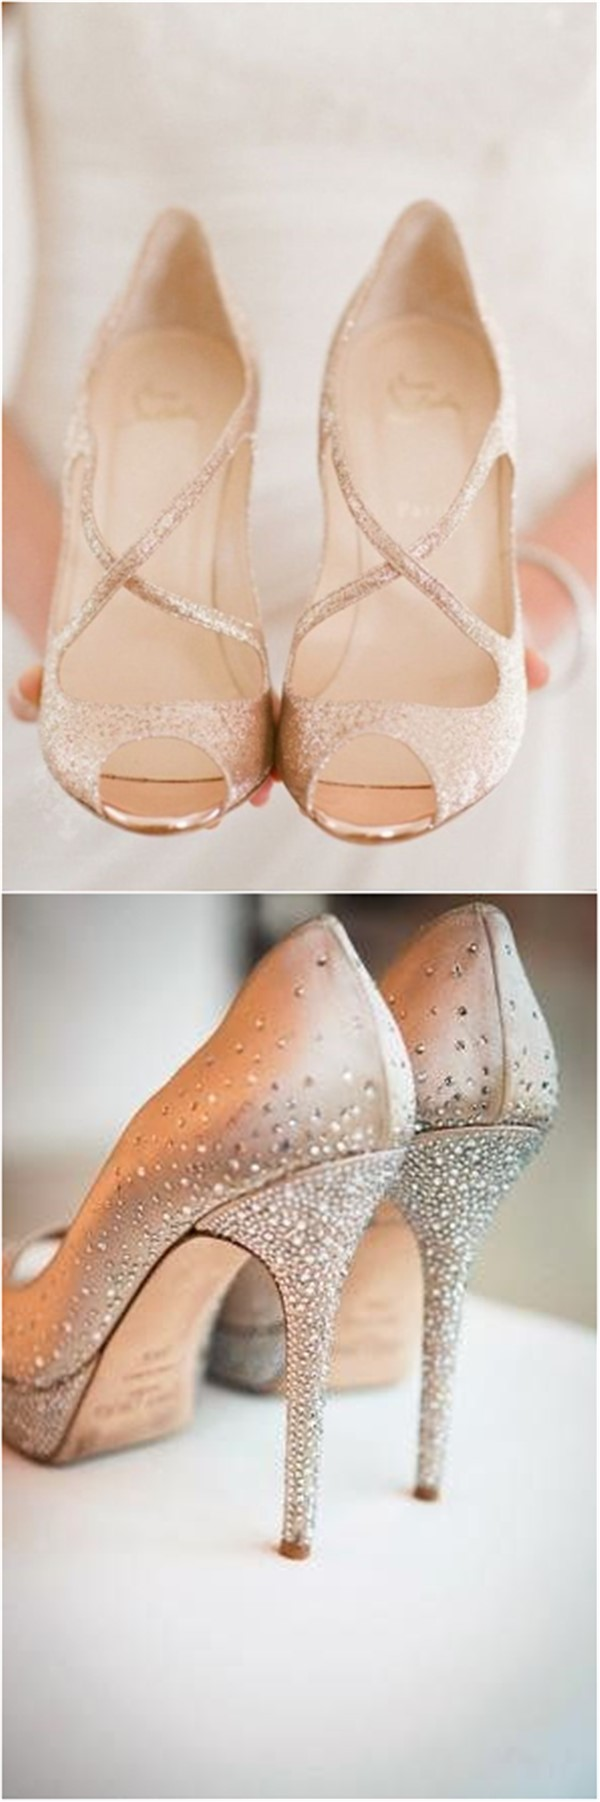 Champagne Colored Wedding Shoes for Your Big Day